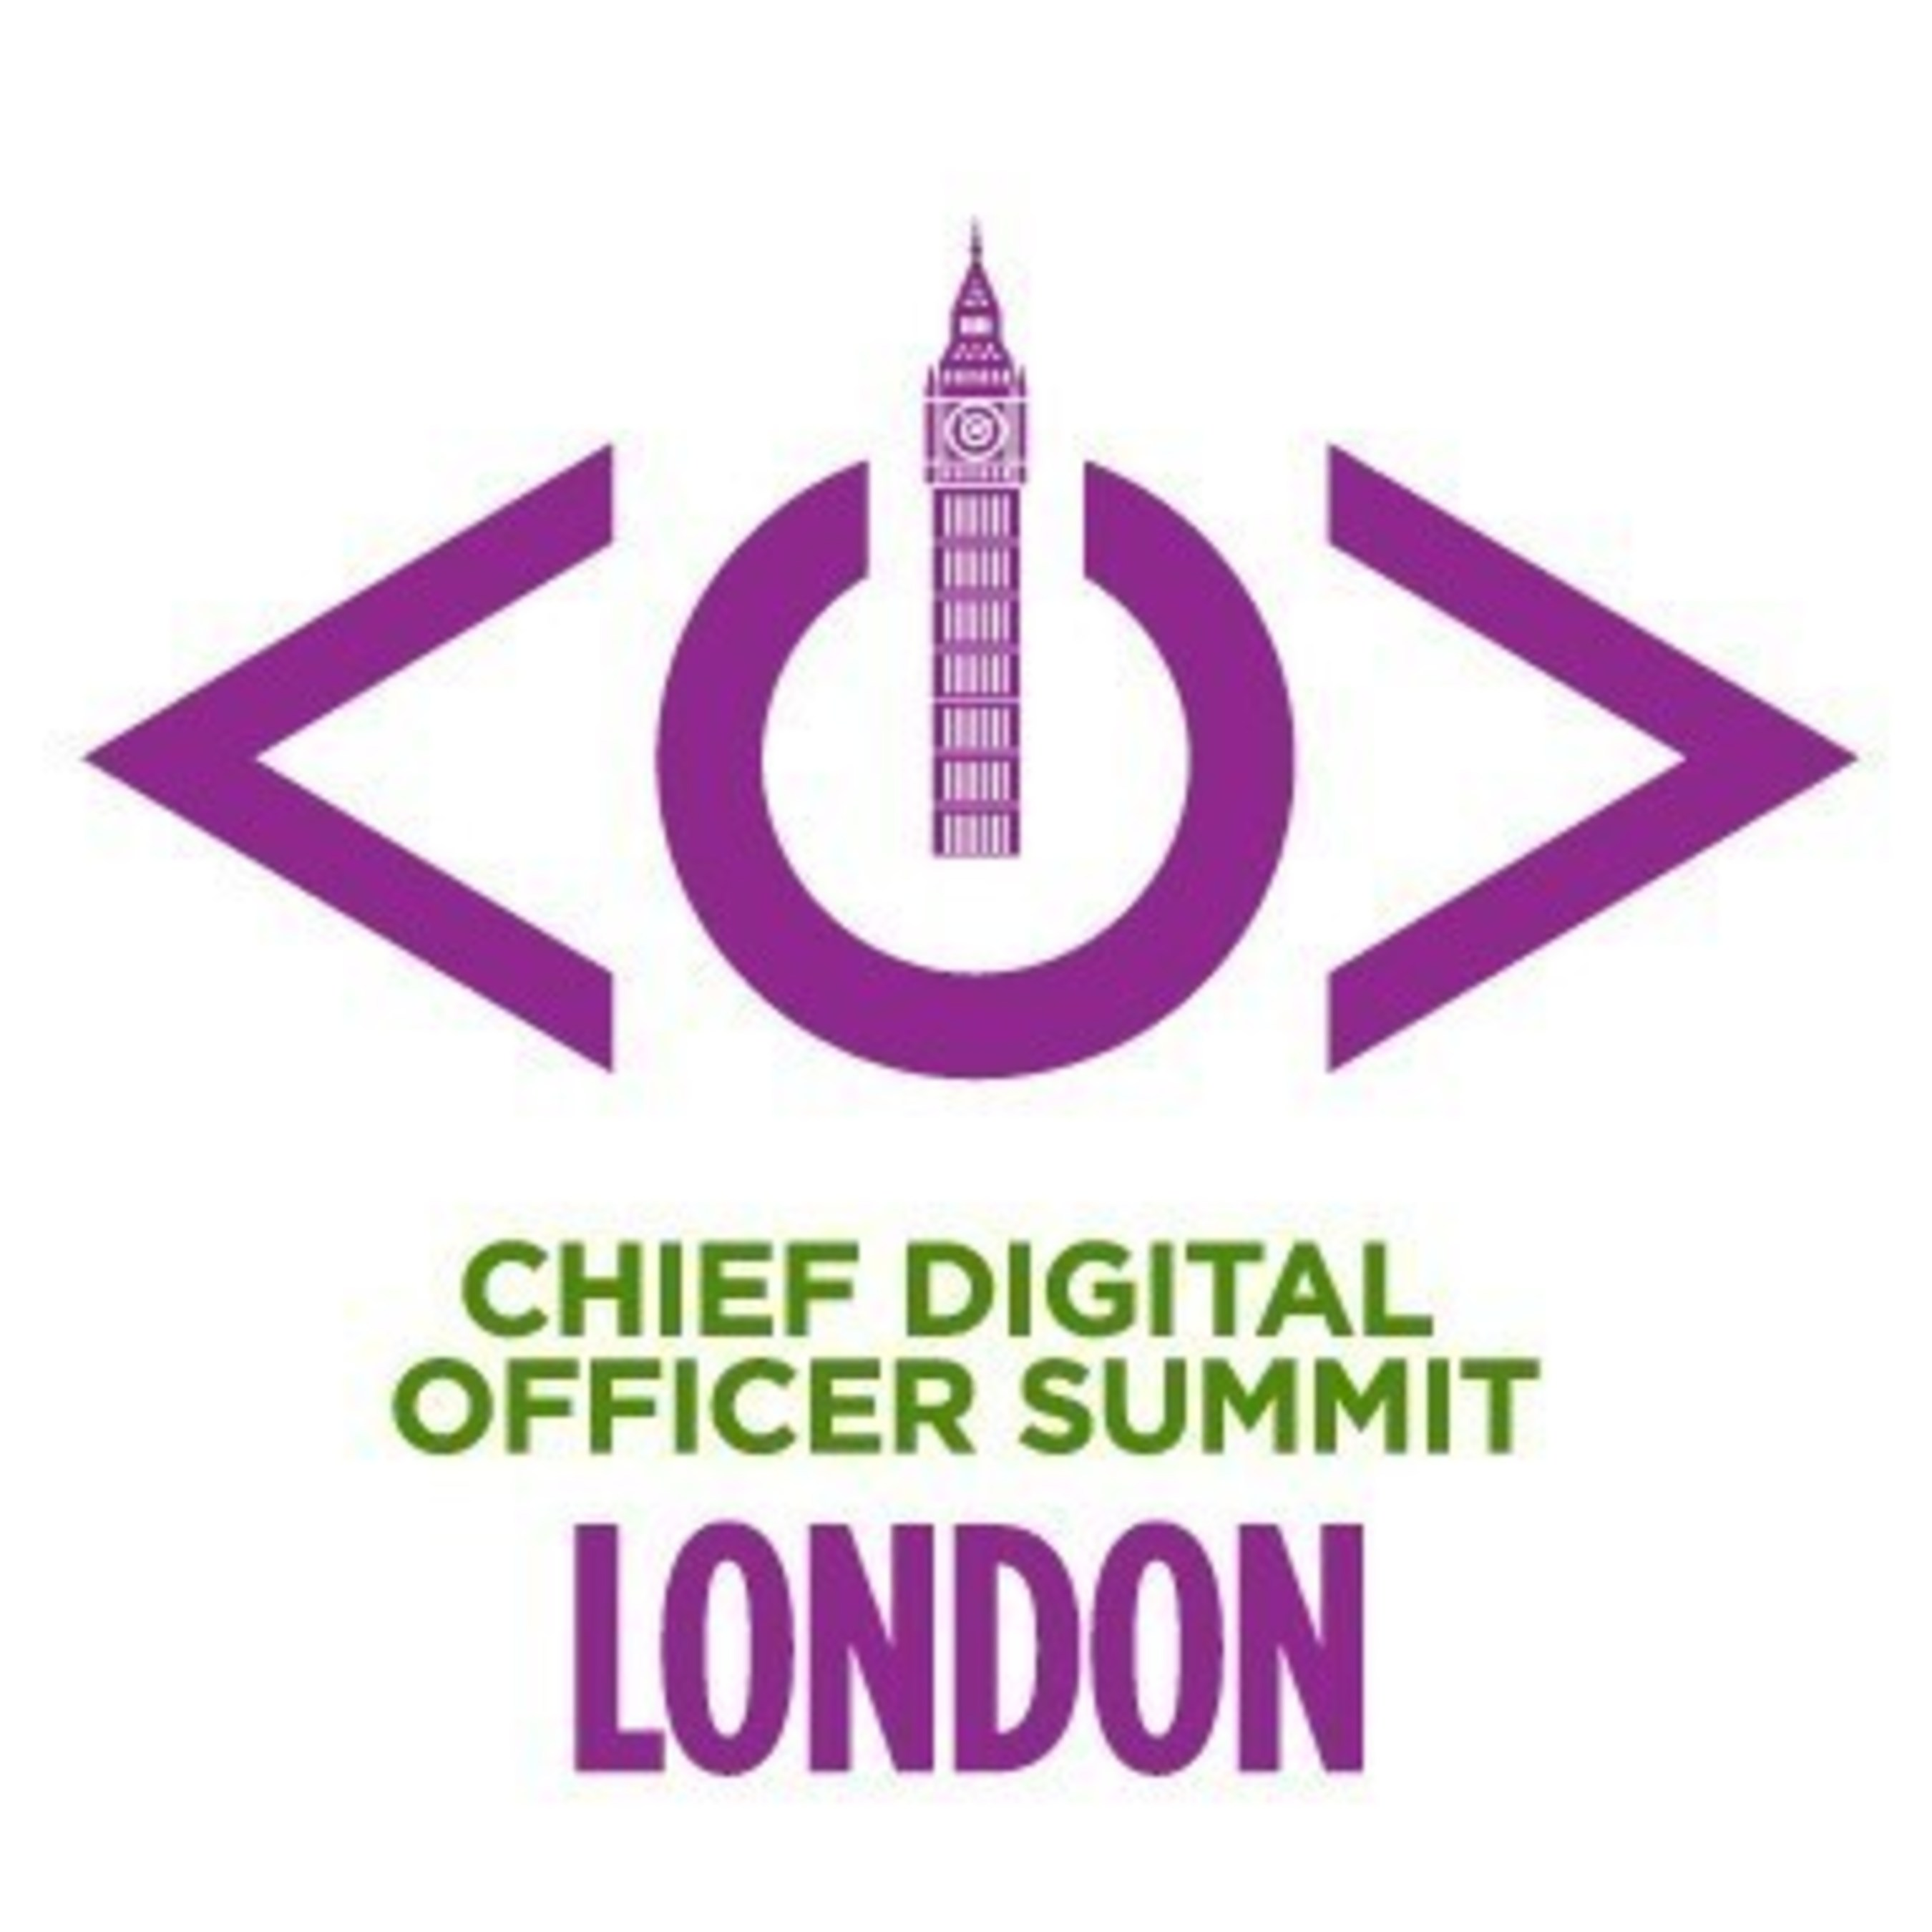 England's Rugby World-Cup-Winning Coach Sir Clive Woodward OBE to Be Featured Speaker at U.K. CDO Summit, Presented by Accenture Strategy